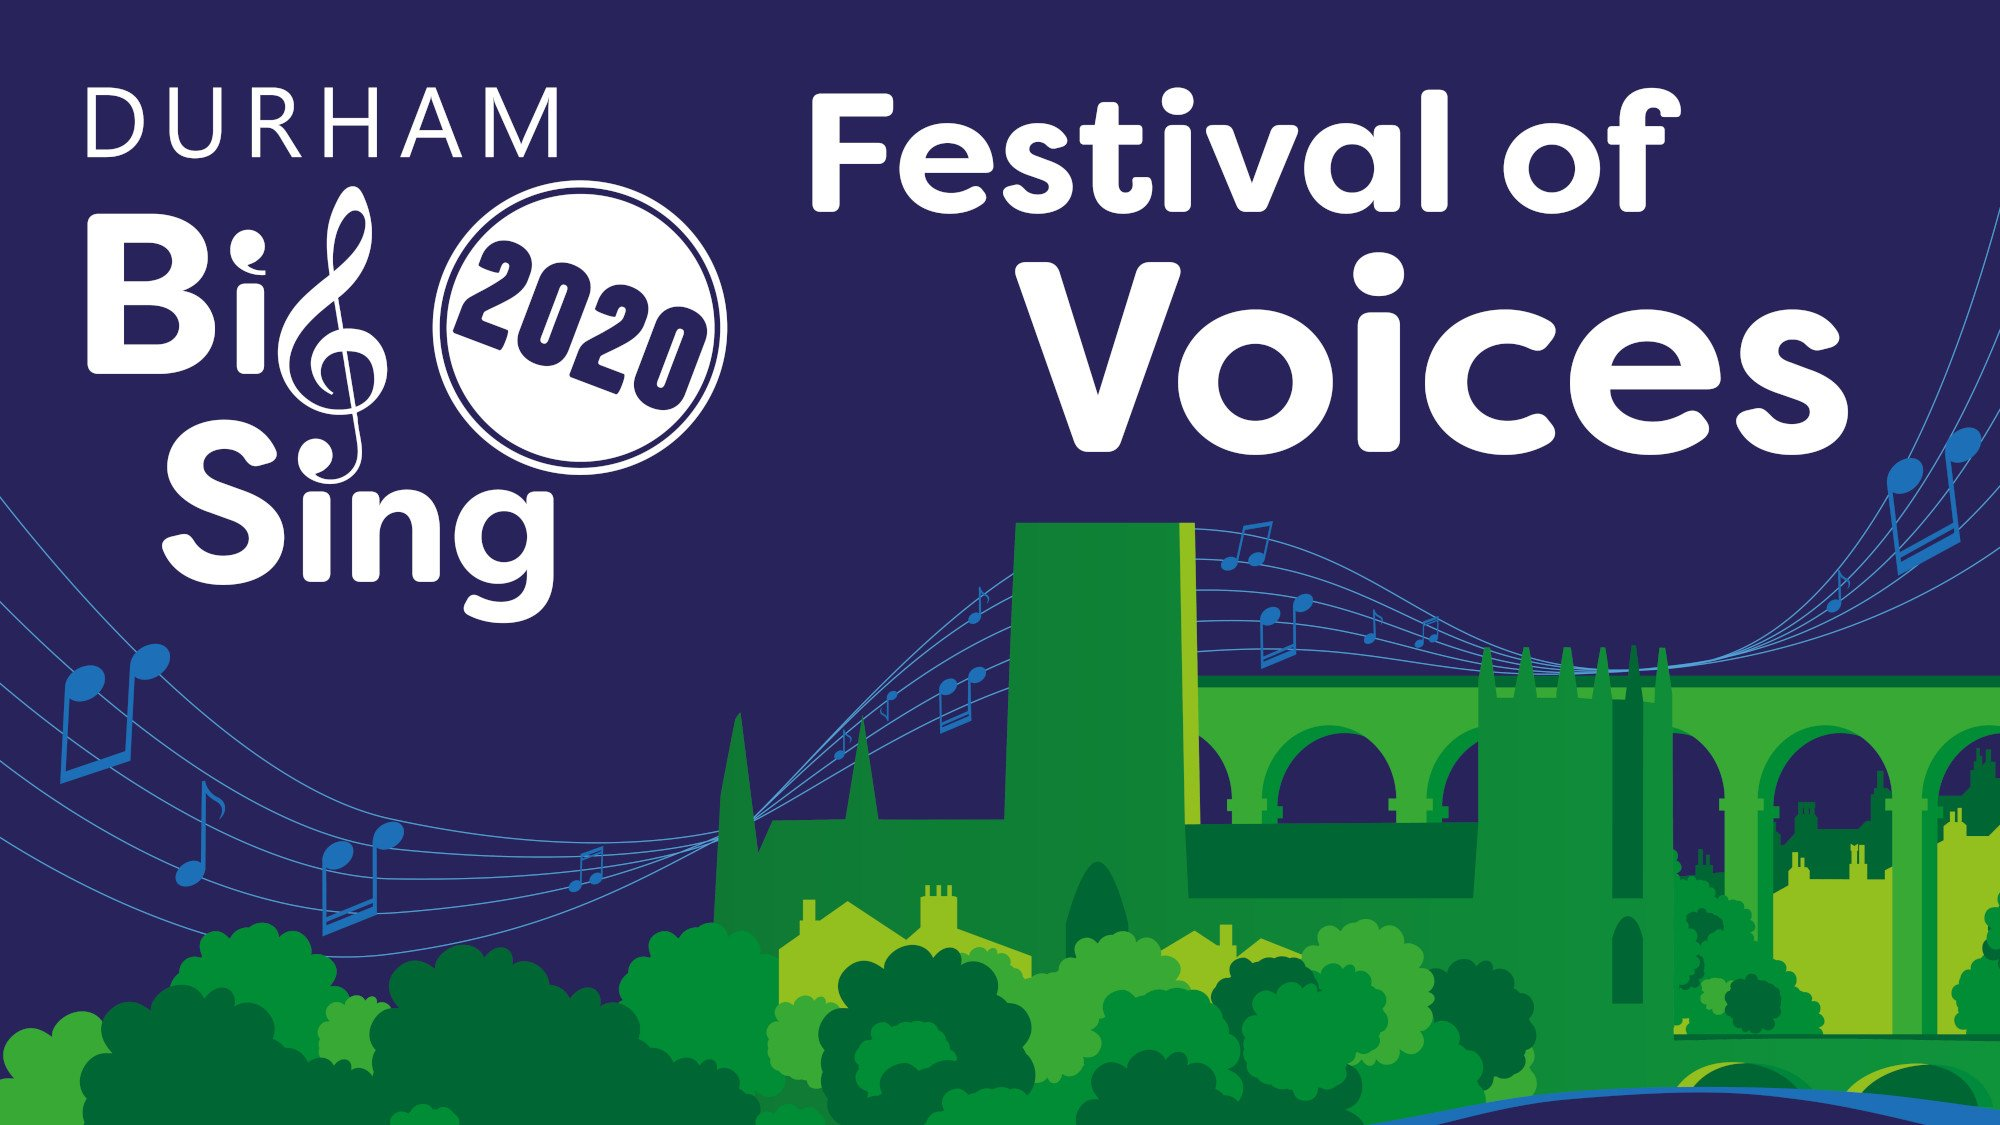 Durham Big Sing - Festival of Voices at Durham Cathedral, The Singing Elf